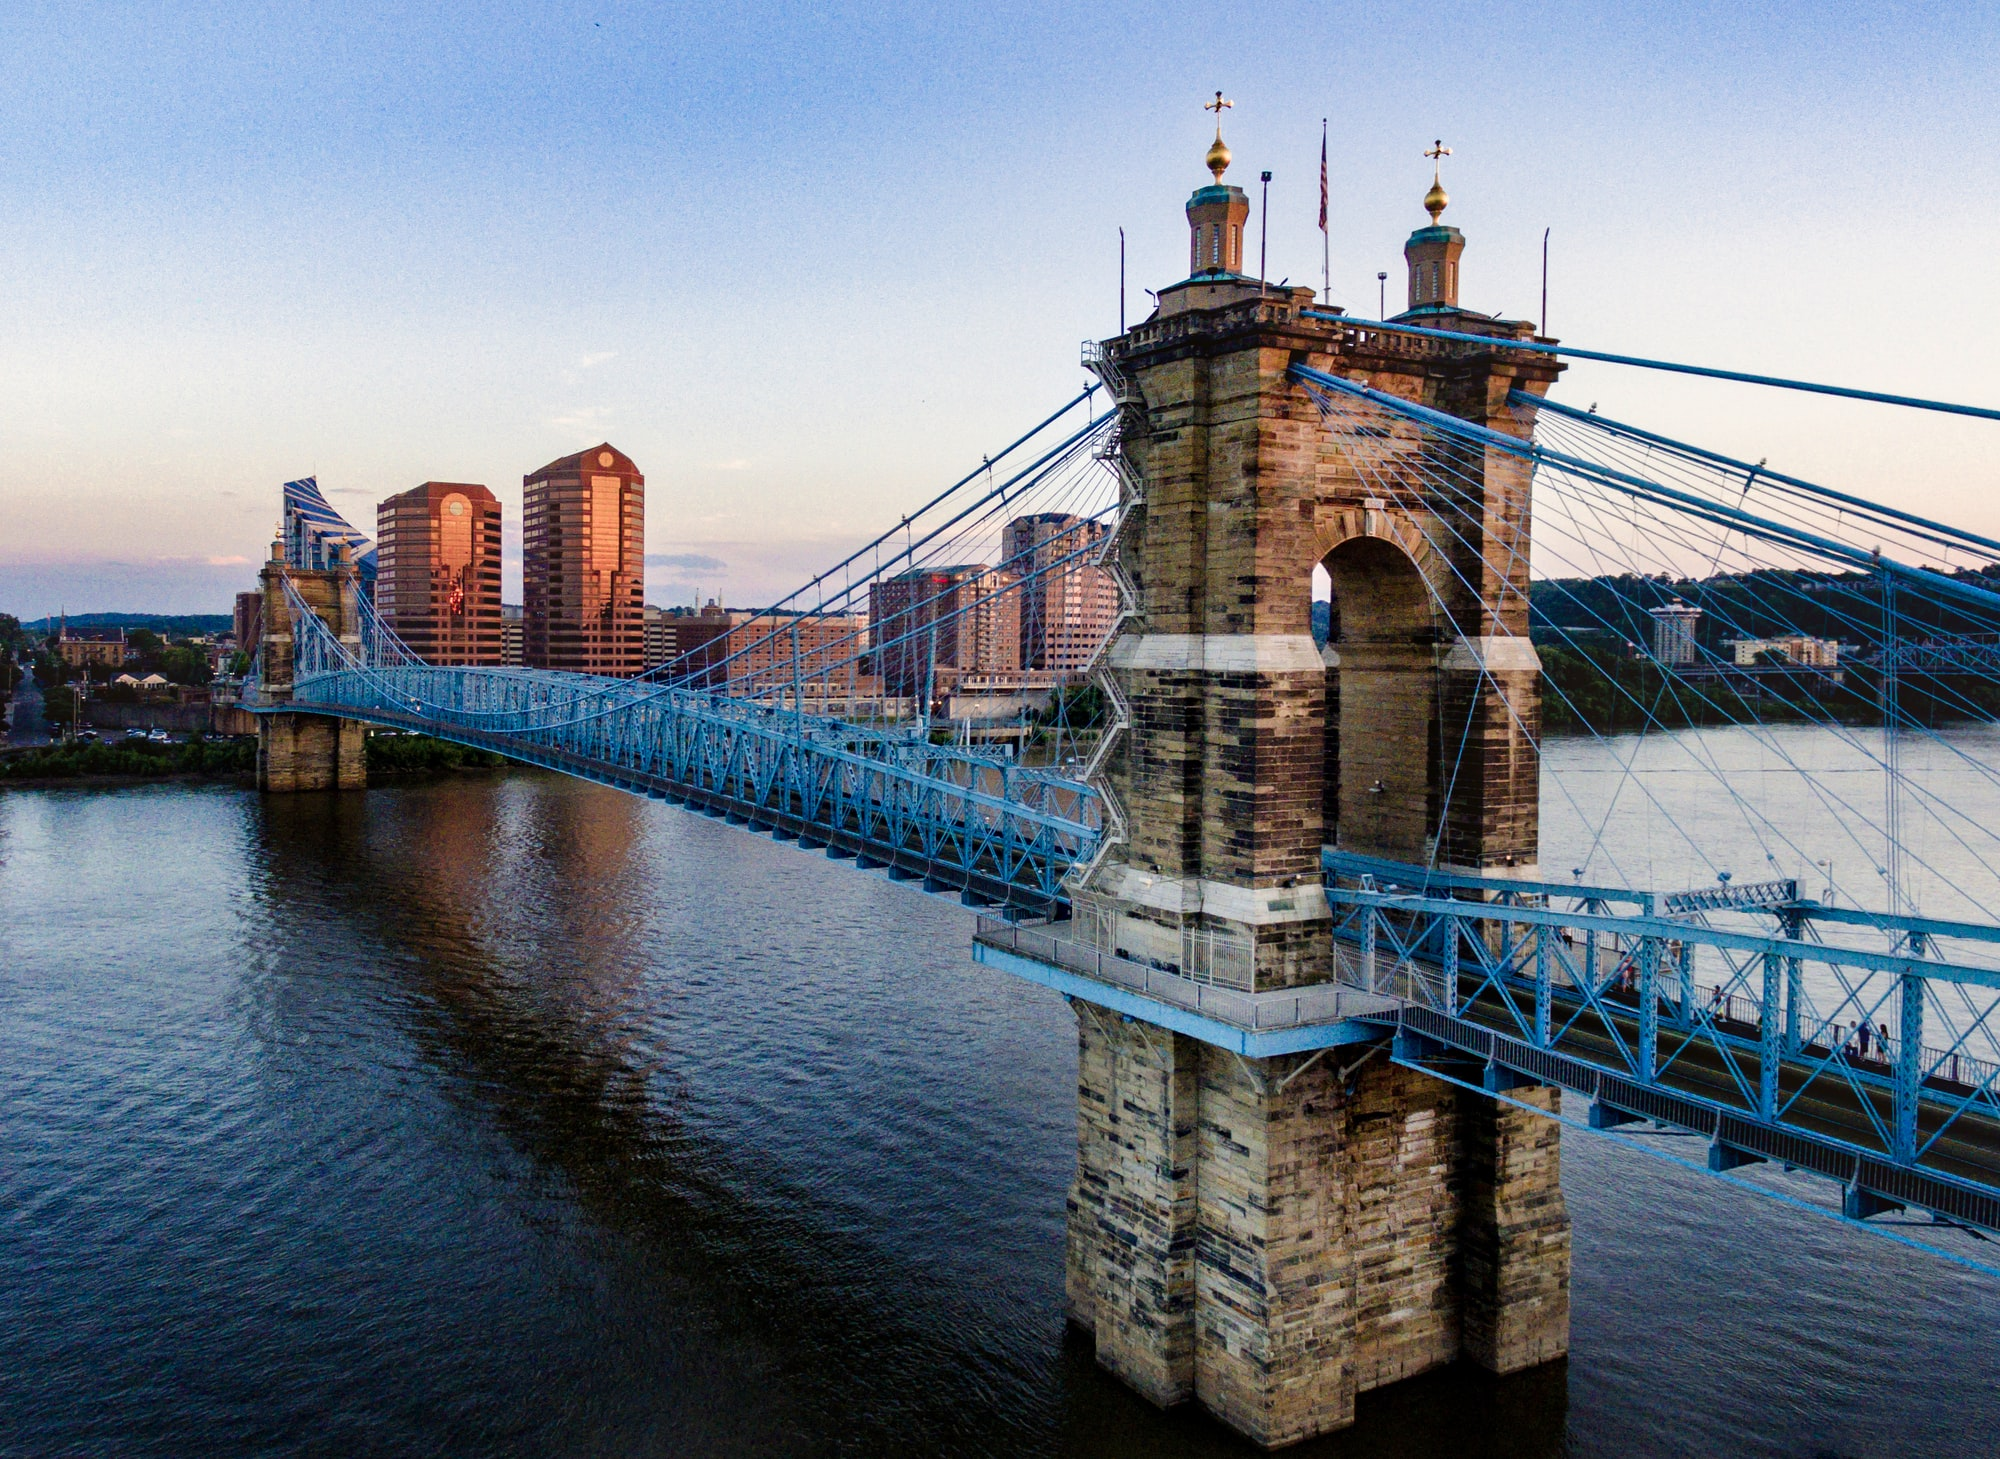 June 30th 2017, I turned 24 and buzzed around and captured this popular Cincinnati bridge.